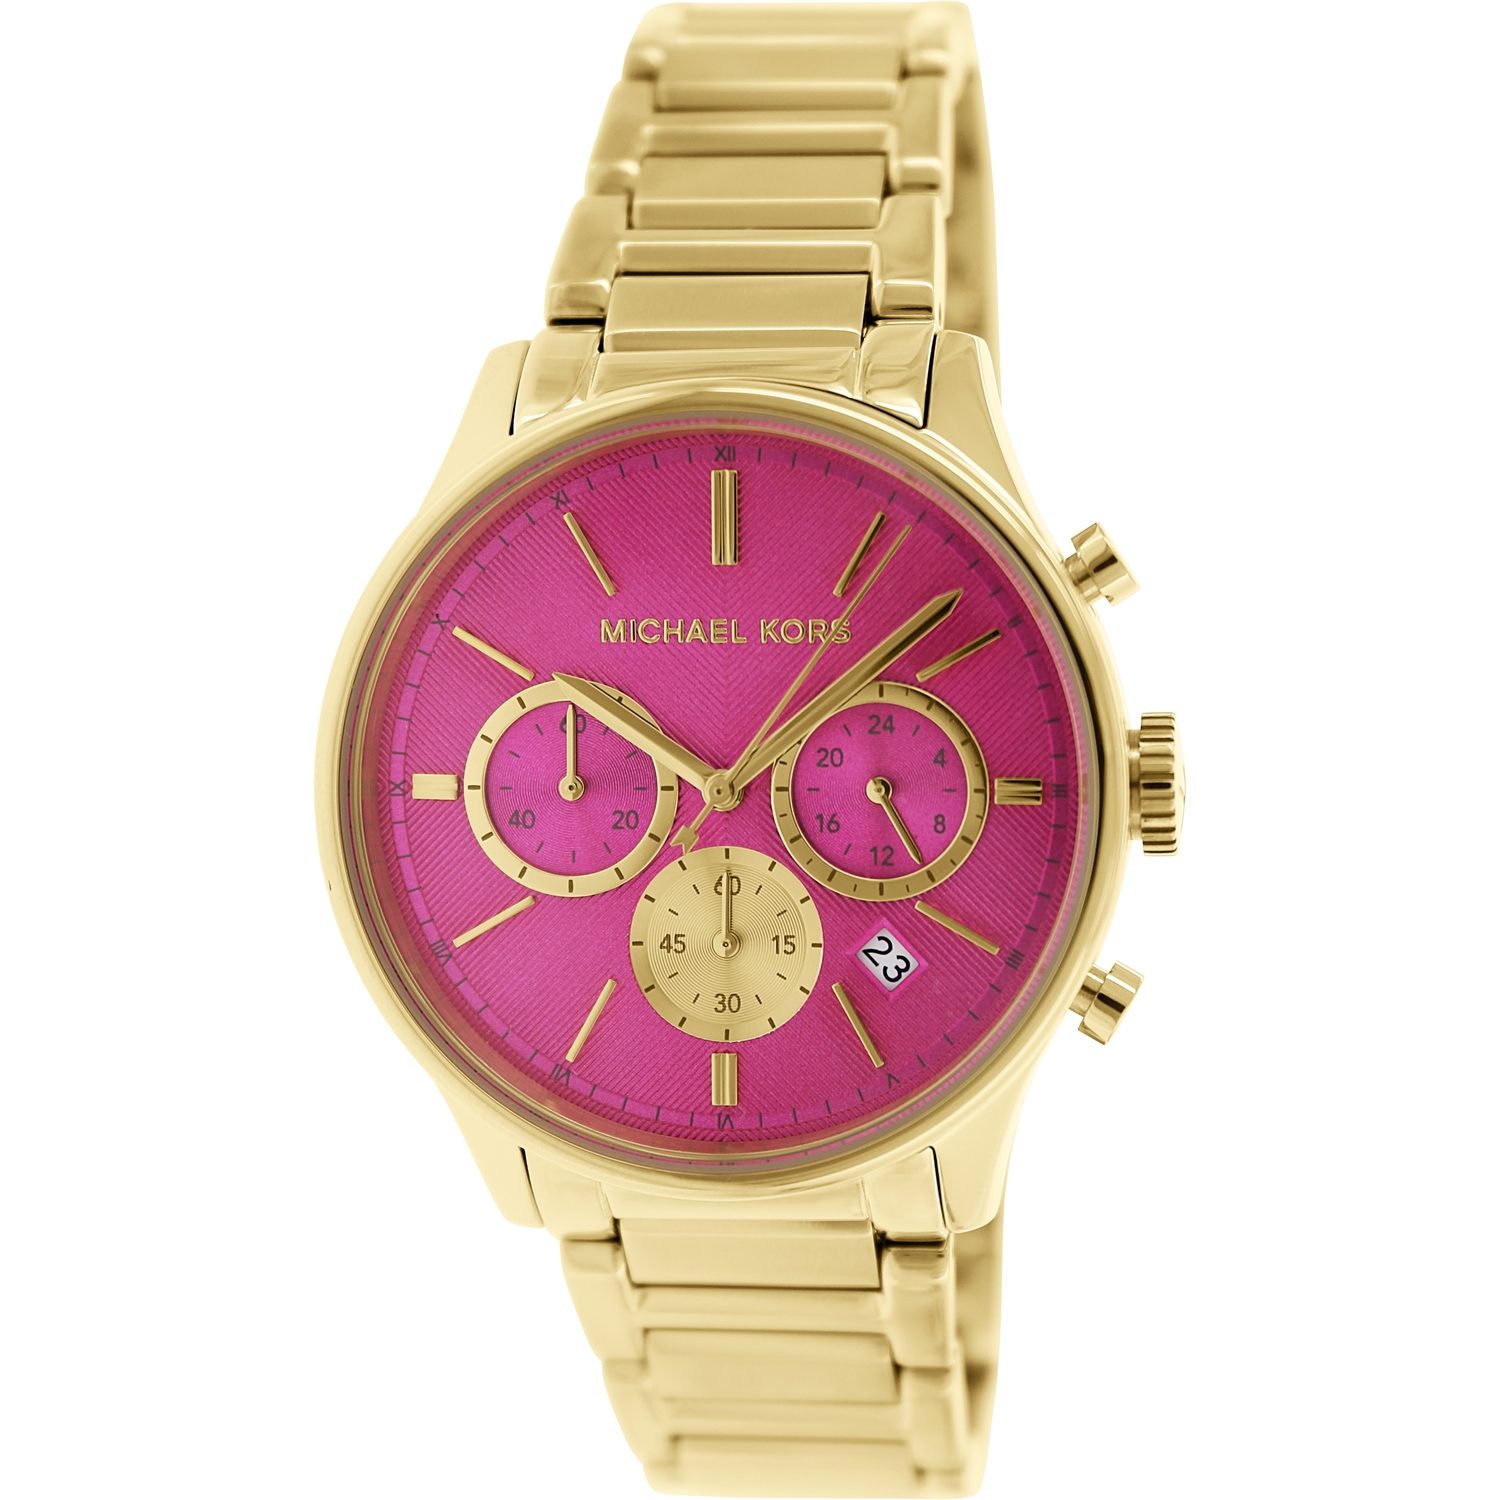 Michael Kors Bailey Ladies Watch - Gold/Hot Pink